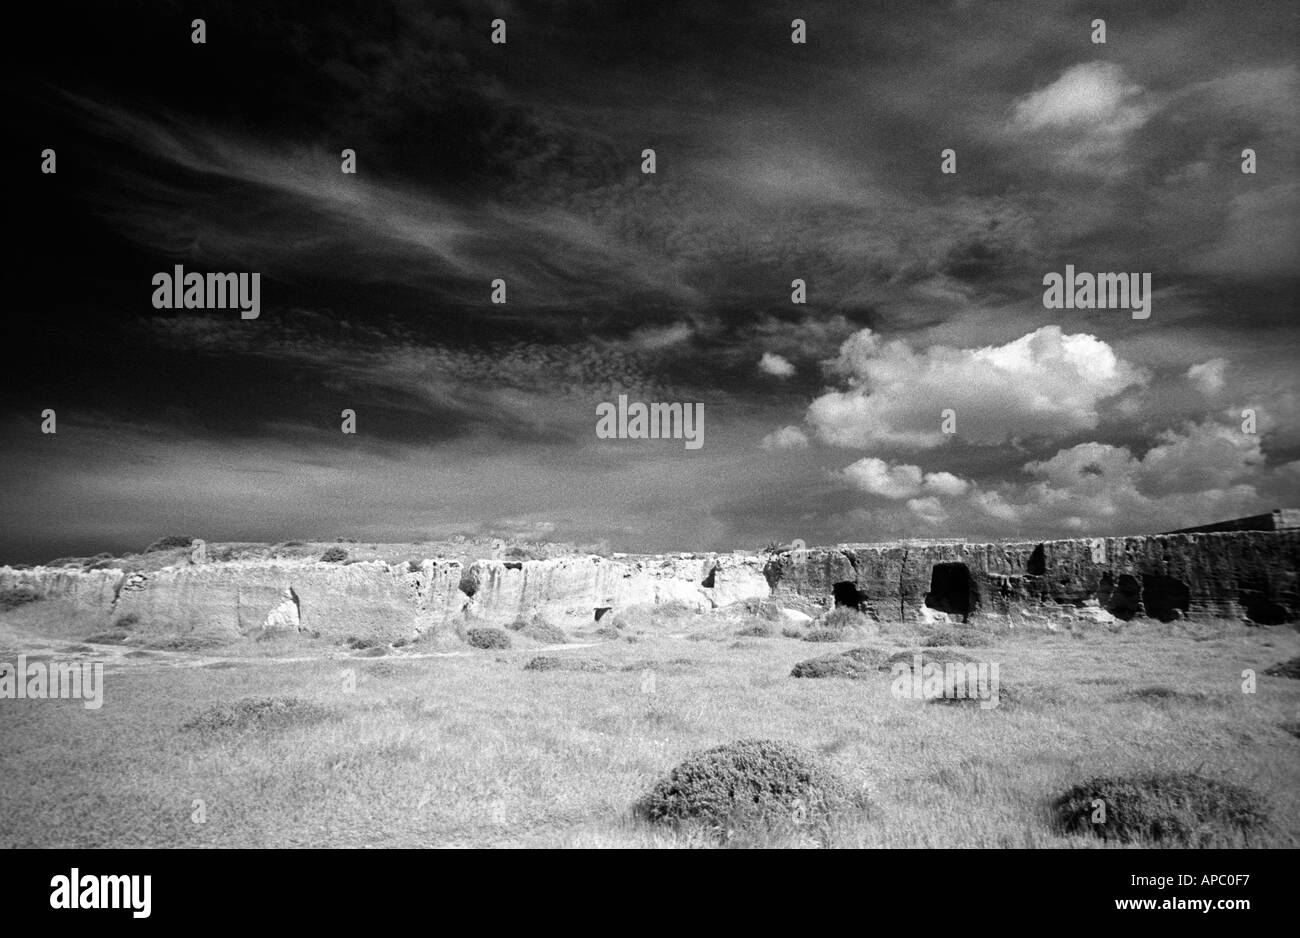 Wild Dawn sky. Moody sky over Cyprus, at the Tomb of the Kings, a popular tourist destination - Stock Image